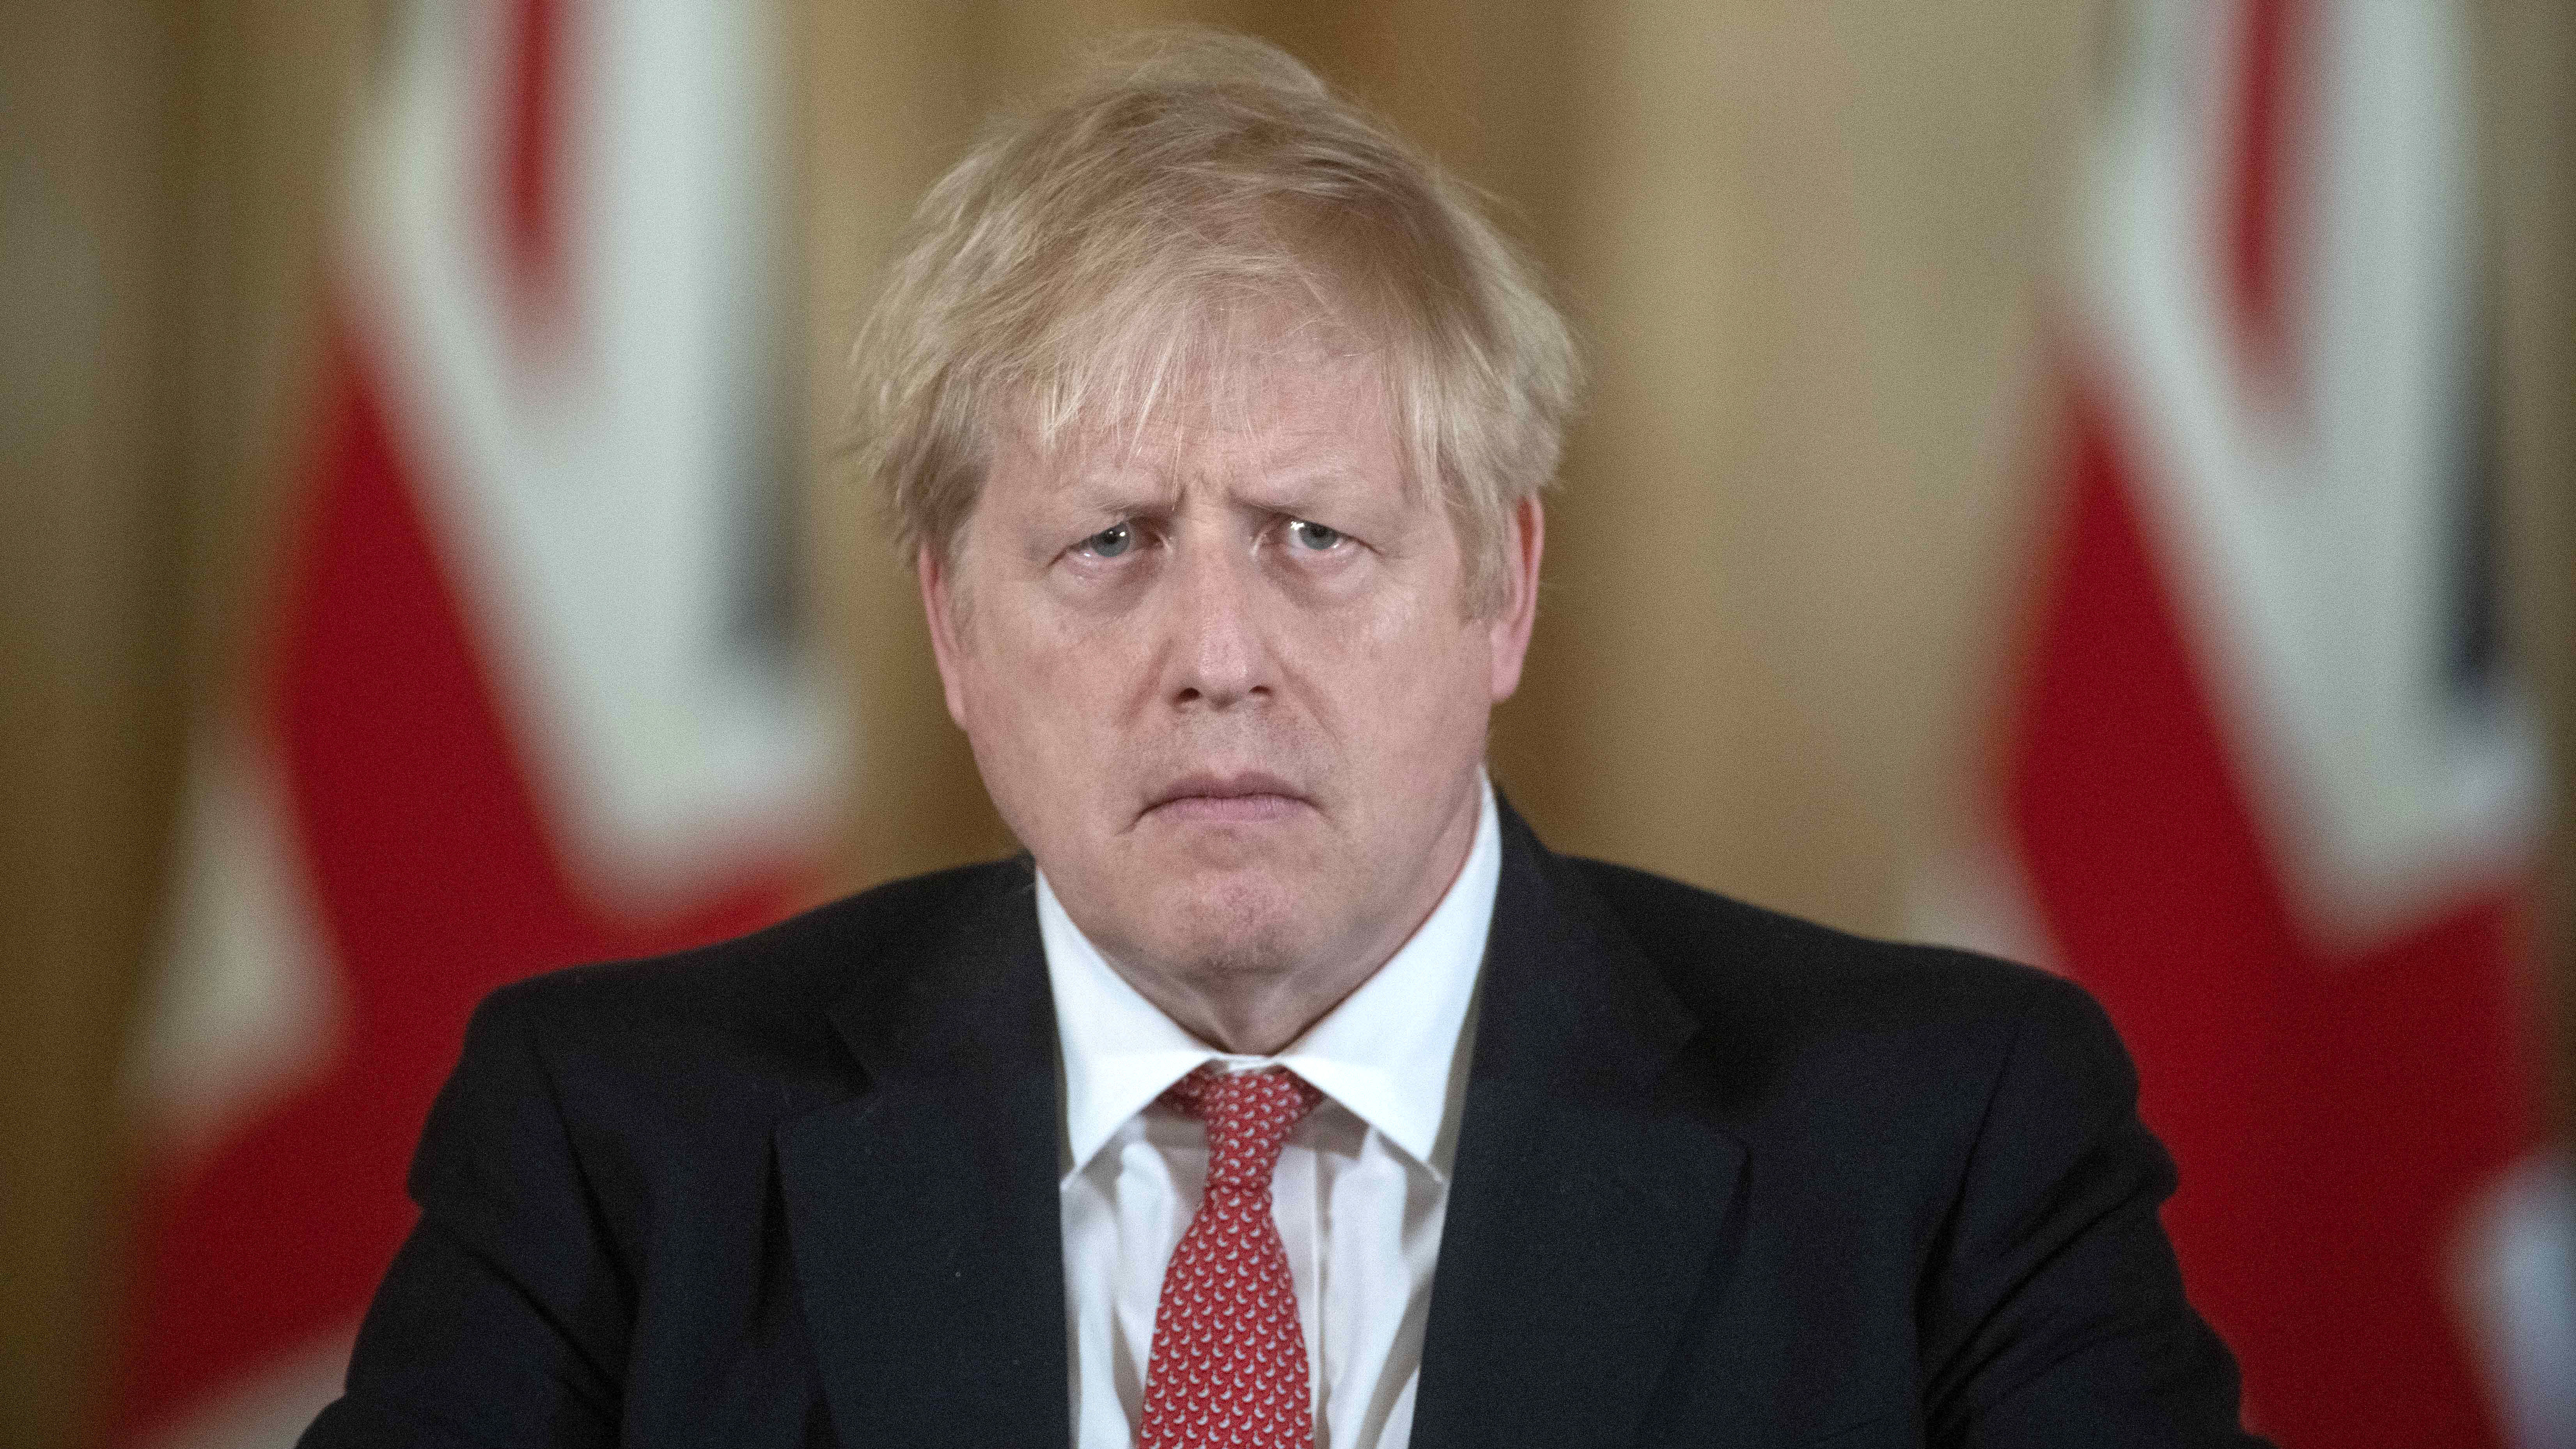 British Prime Minister Boris Johnson speaks during a press conference at 10 Downing Street in London on March 20.